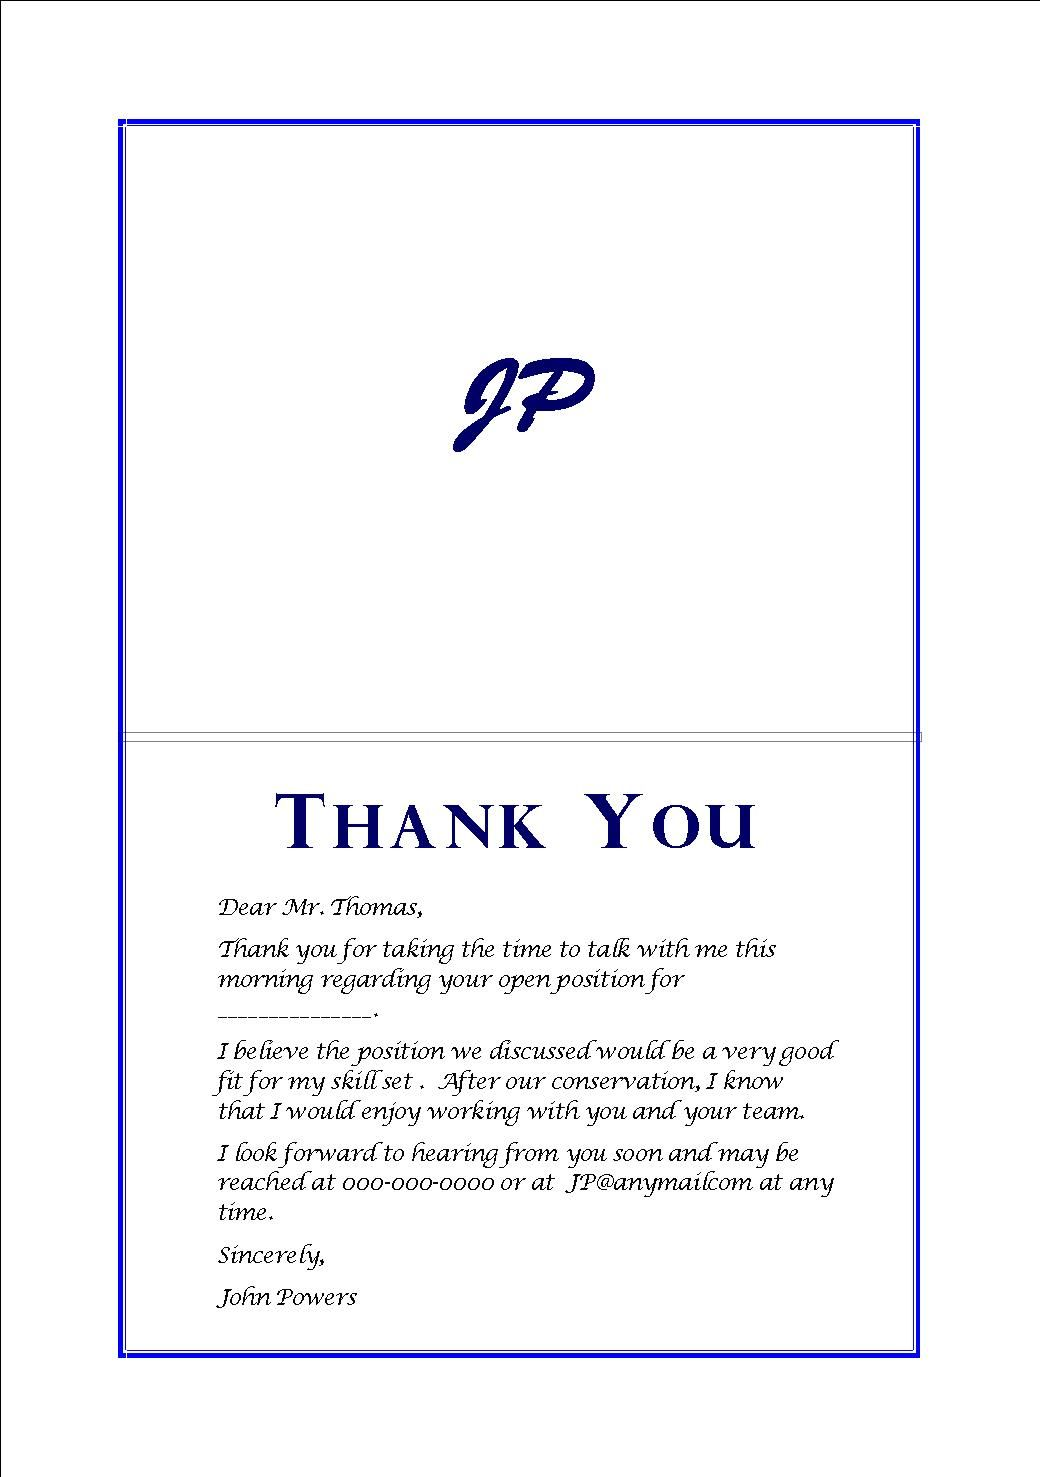 Market Research Interviewer Resume Thank You Cards After Interview 2013 Pinterest